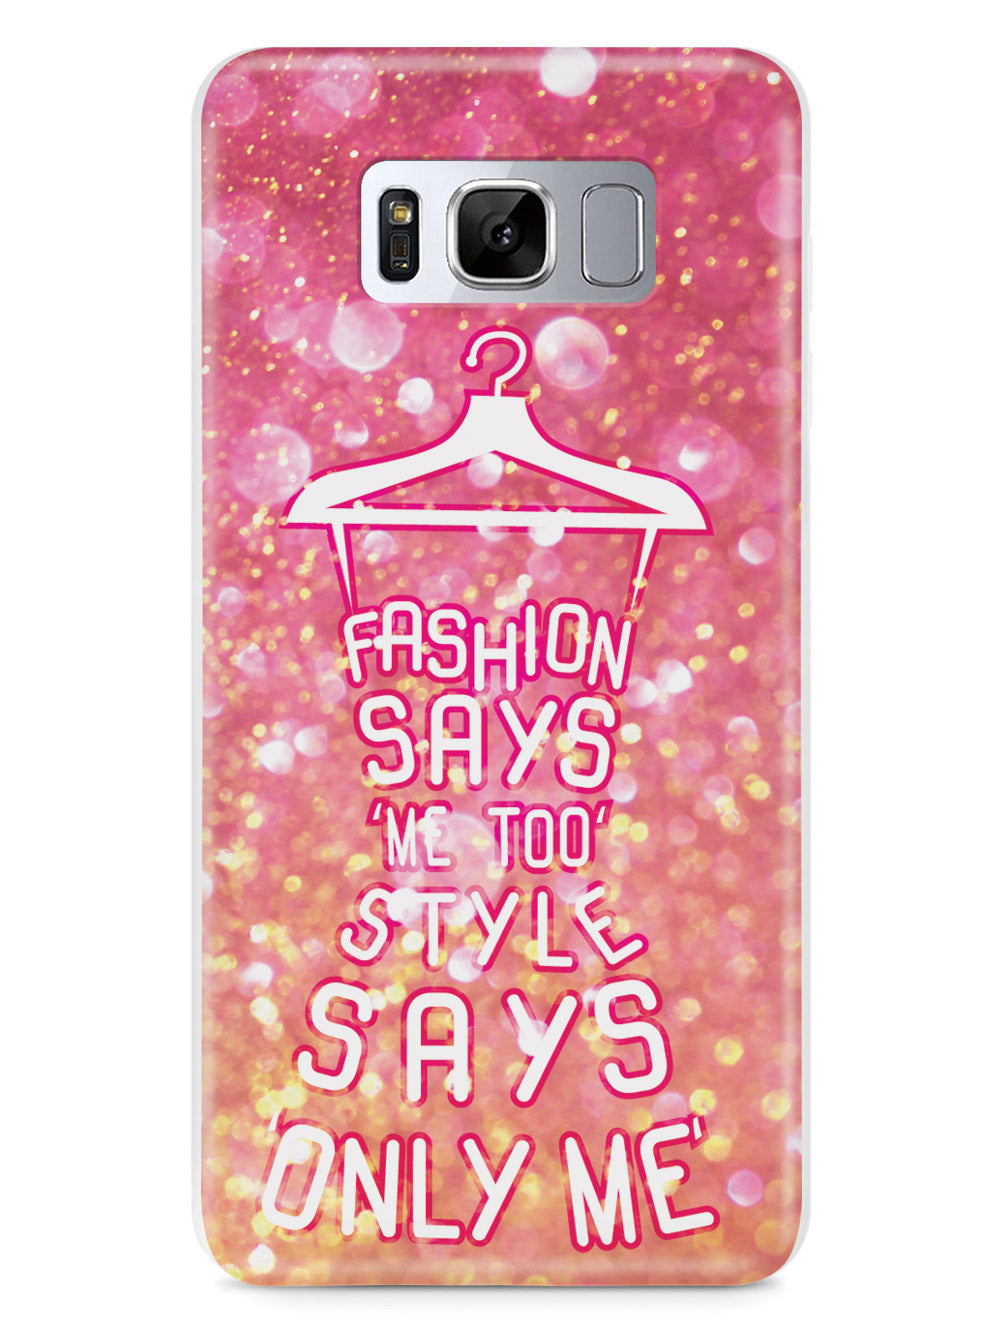 Fashion vs Style Case